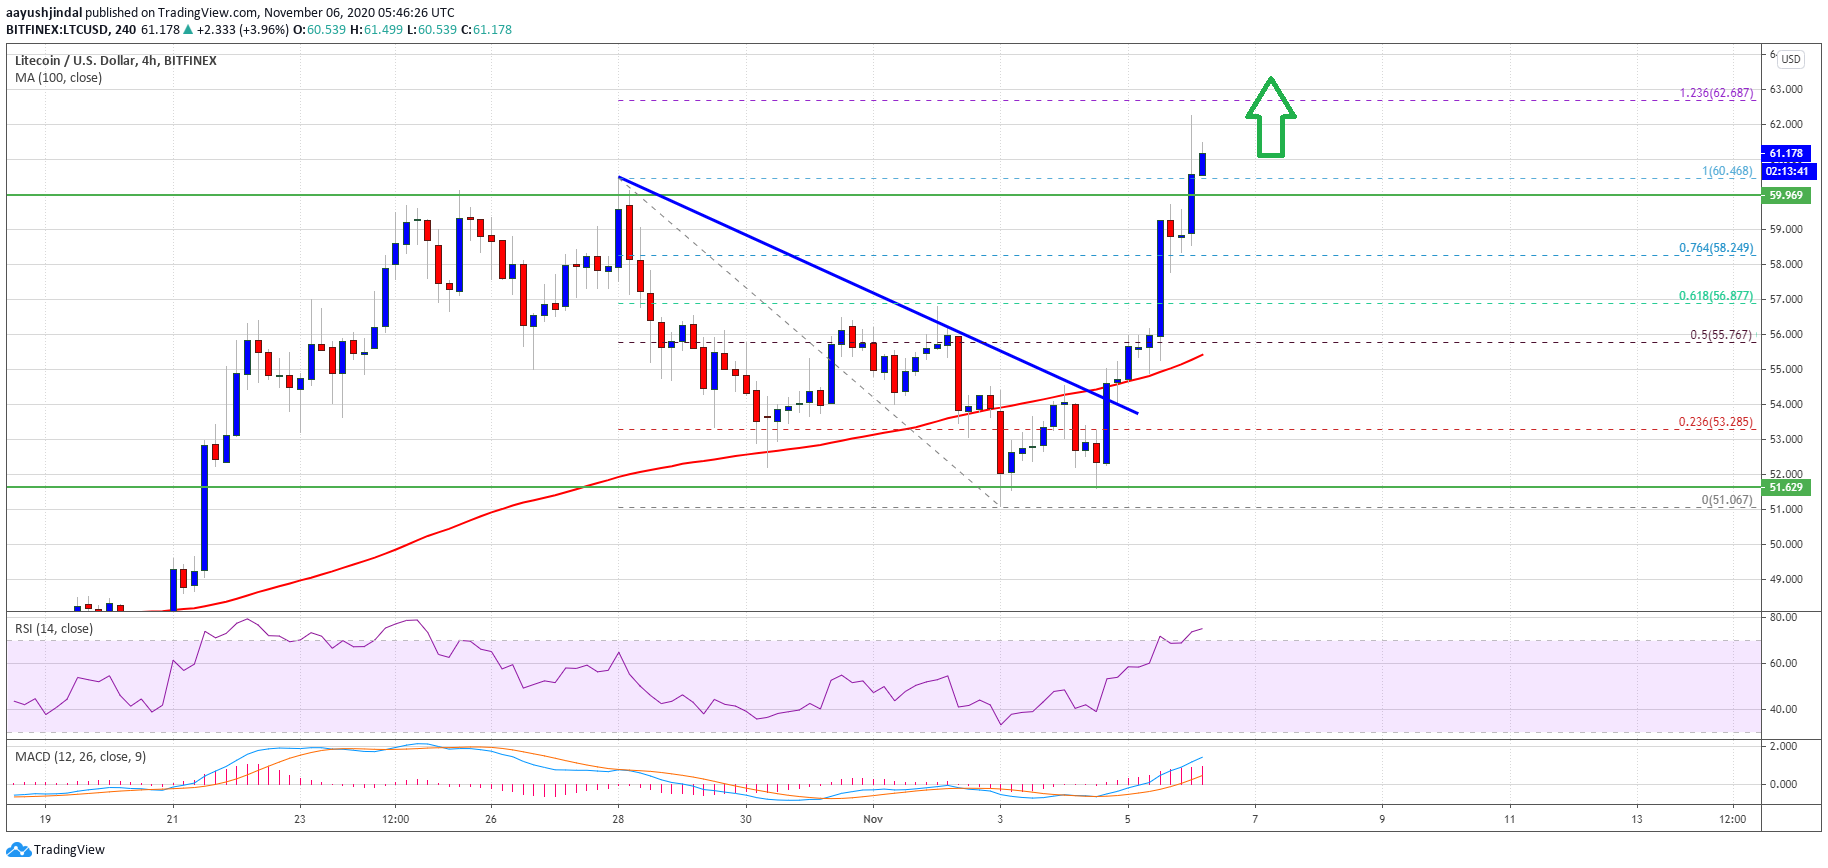 Charted: Litecoin Rallies 10%, Indicators Suggest Rally To $70